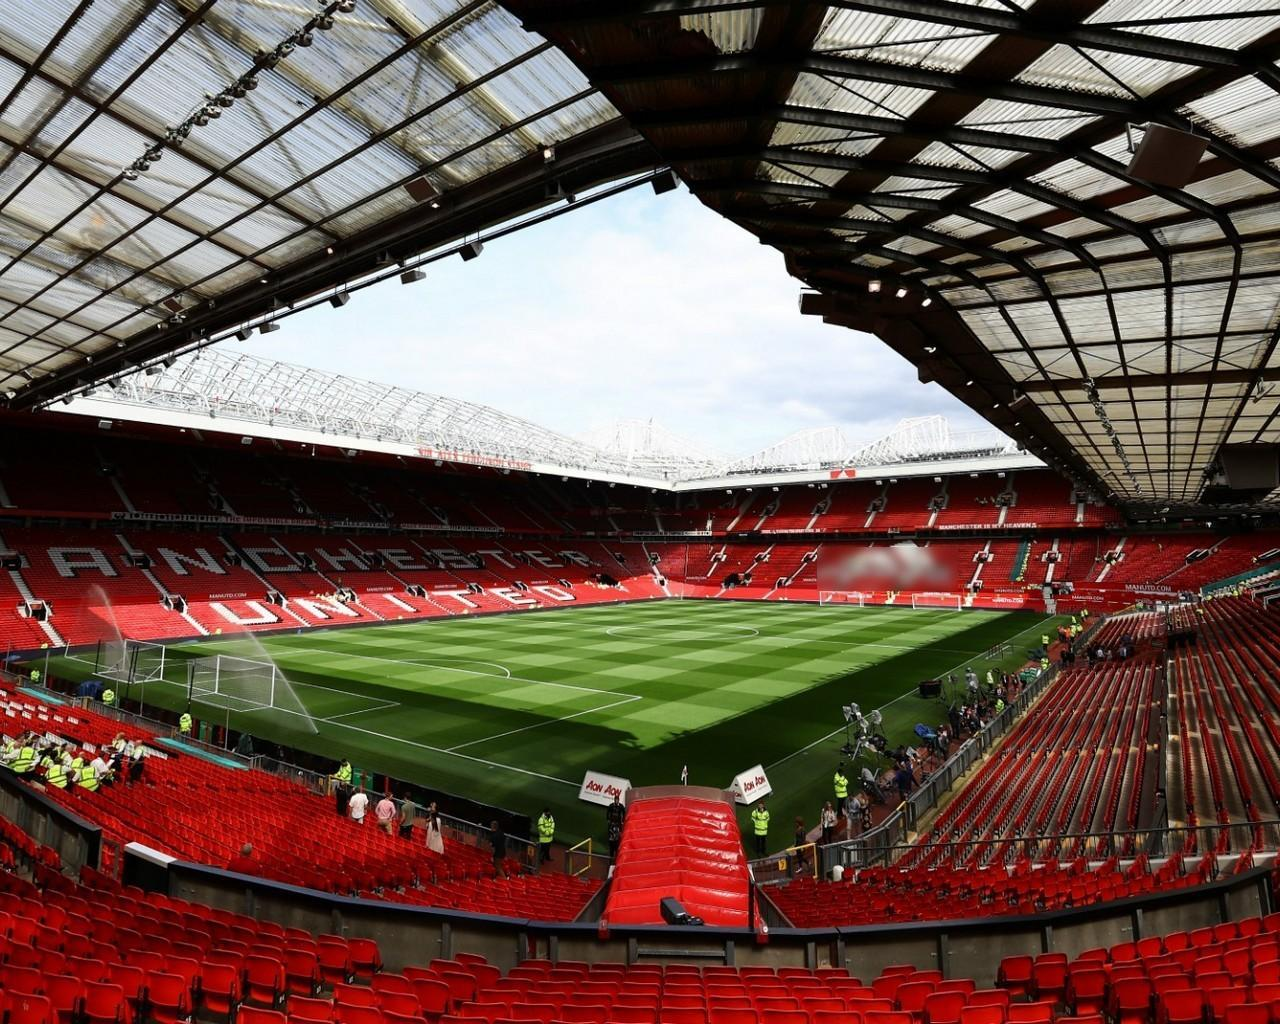 Old Trafford Stadium New Wallpapers Themes for Android - APK Download